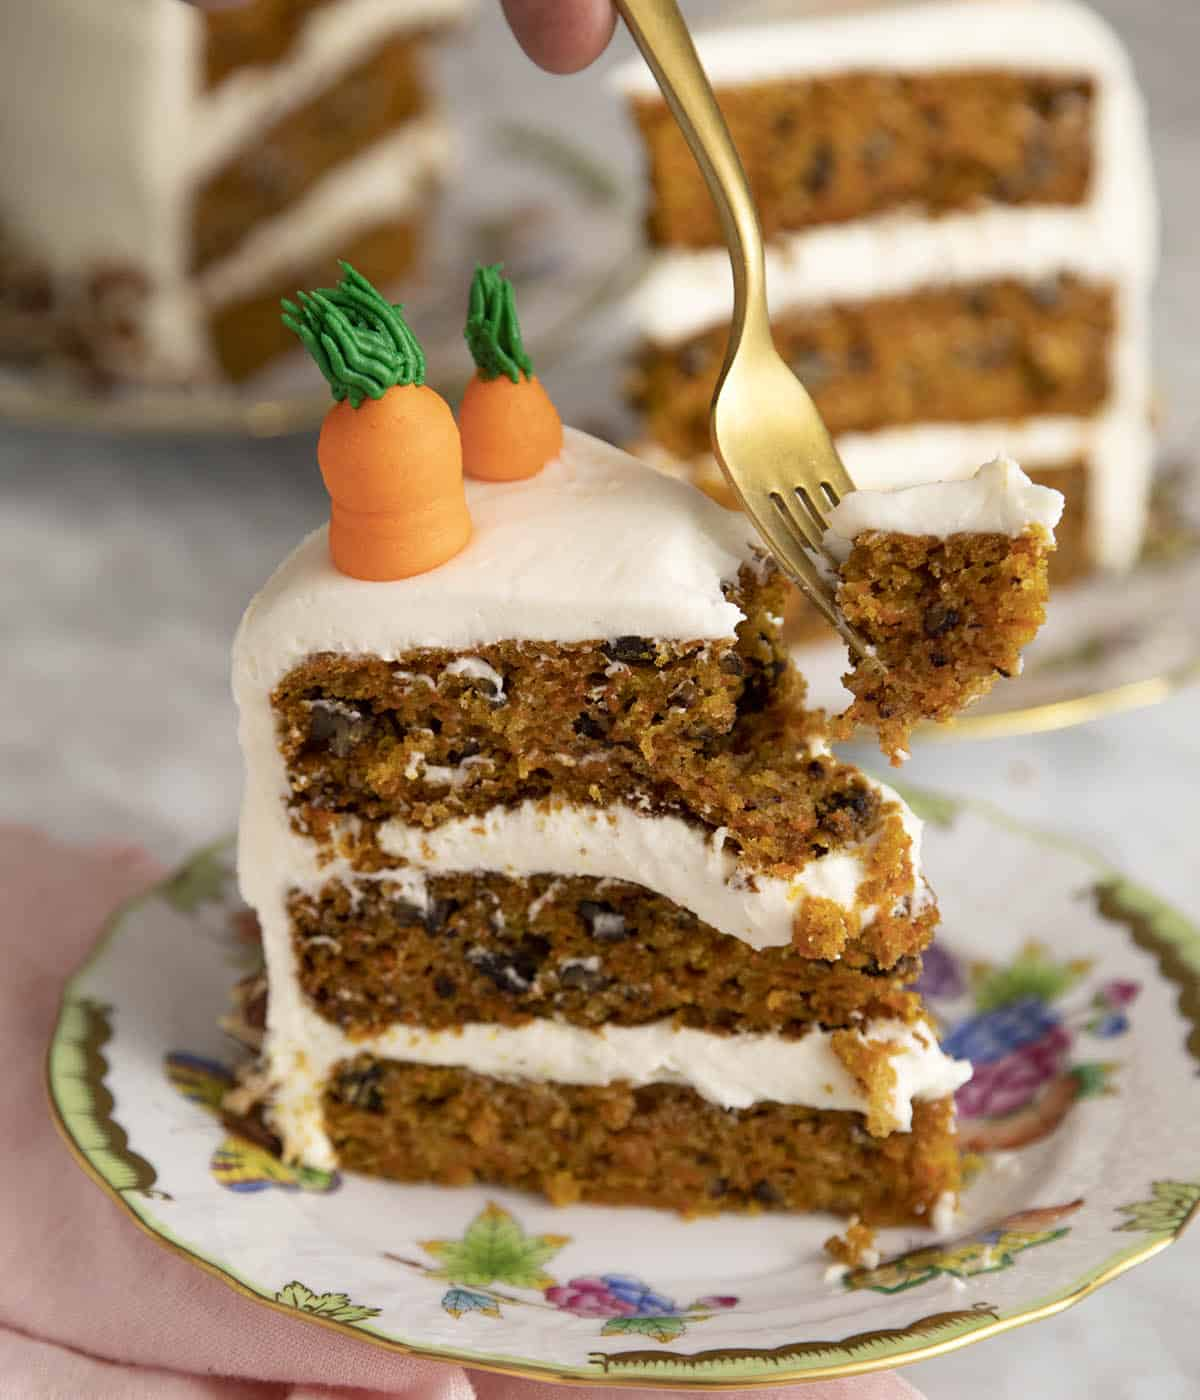 A piece of carrot cake being eaten with a golden fork.